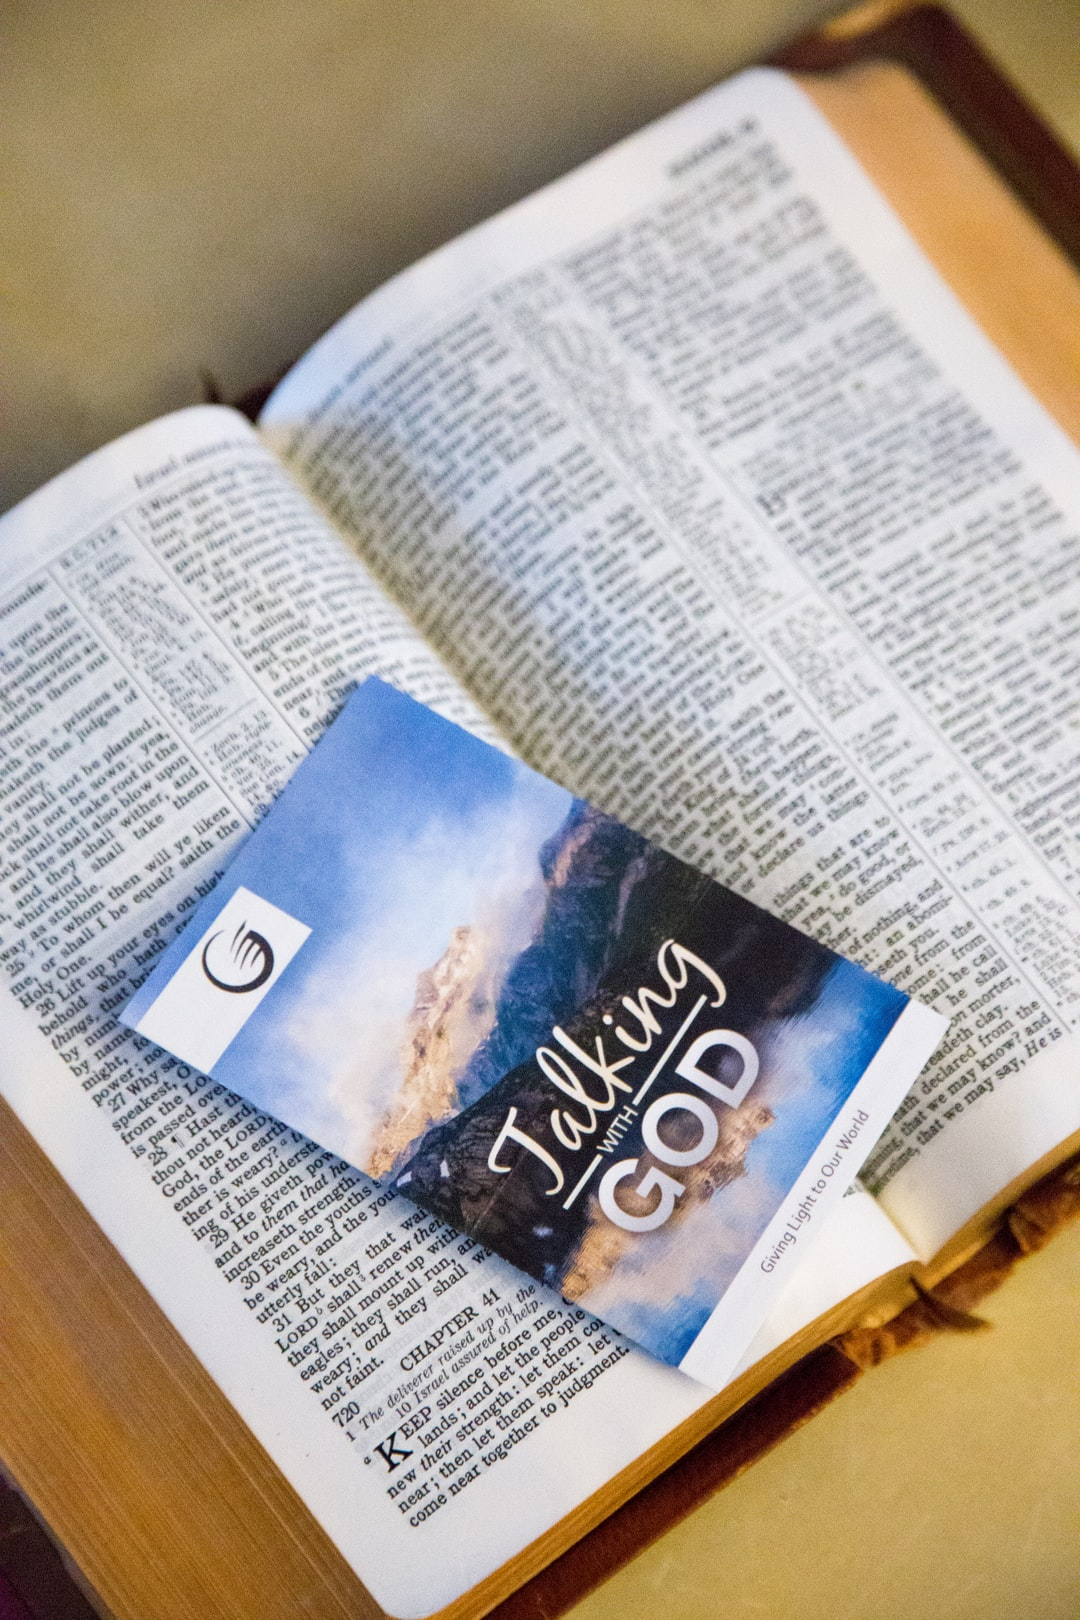 Bible Study Downloads | Free Bible visuals and studies in ...